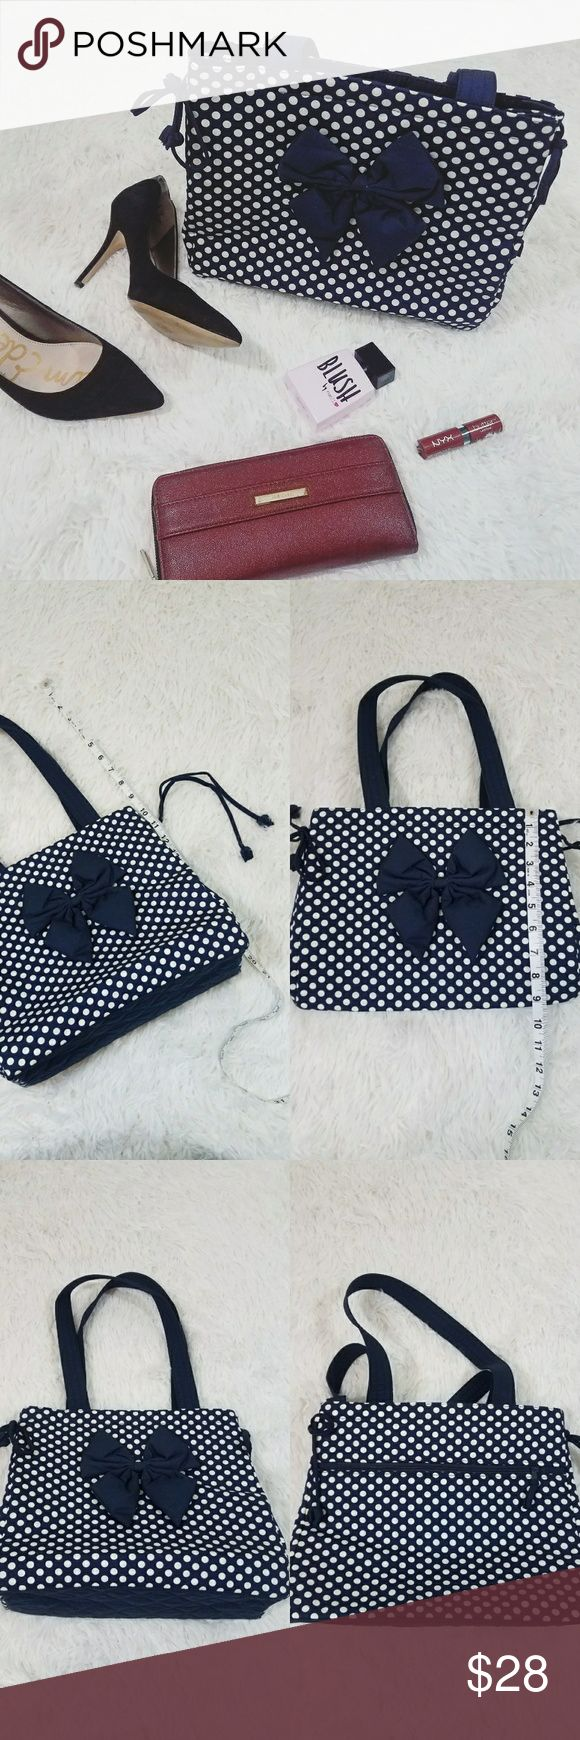 Blue and White Polka Dot Shoulder Bag Excellent condition. Never used.   Blue and White polka dot. Bow on front.   Draw strings on sides to tighten bag.   All zippers work. Three pockets inside. Zipper pocket on outside.   Bought from Thailand. Great quality.   Could be used as a lunch bag, small diaper bag, purse, etc. Bags Shoulder Bags